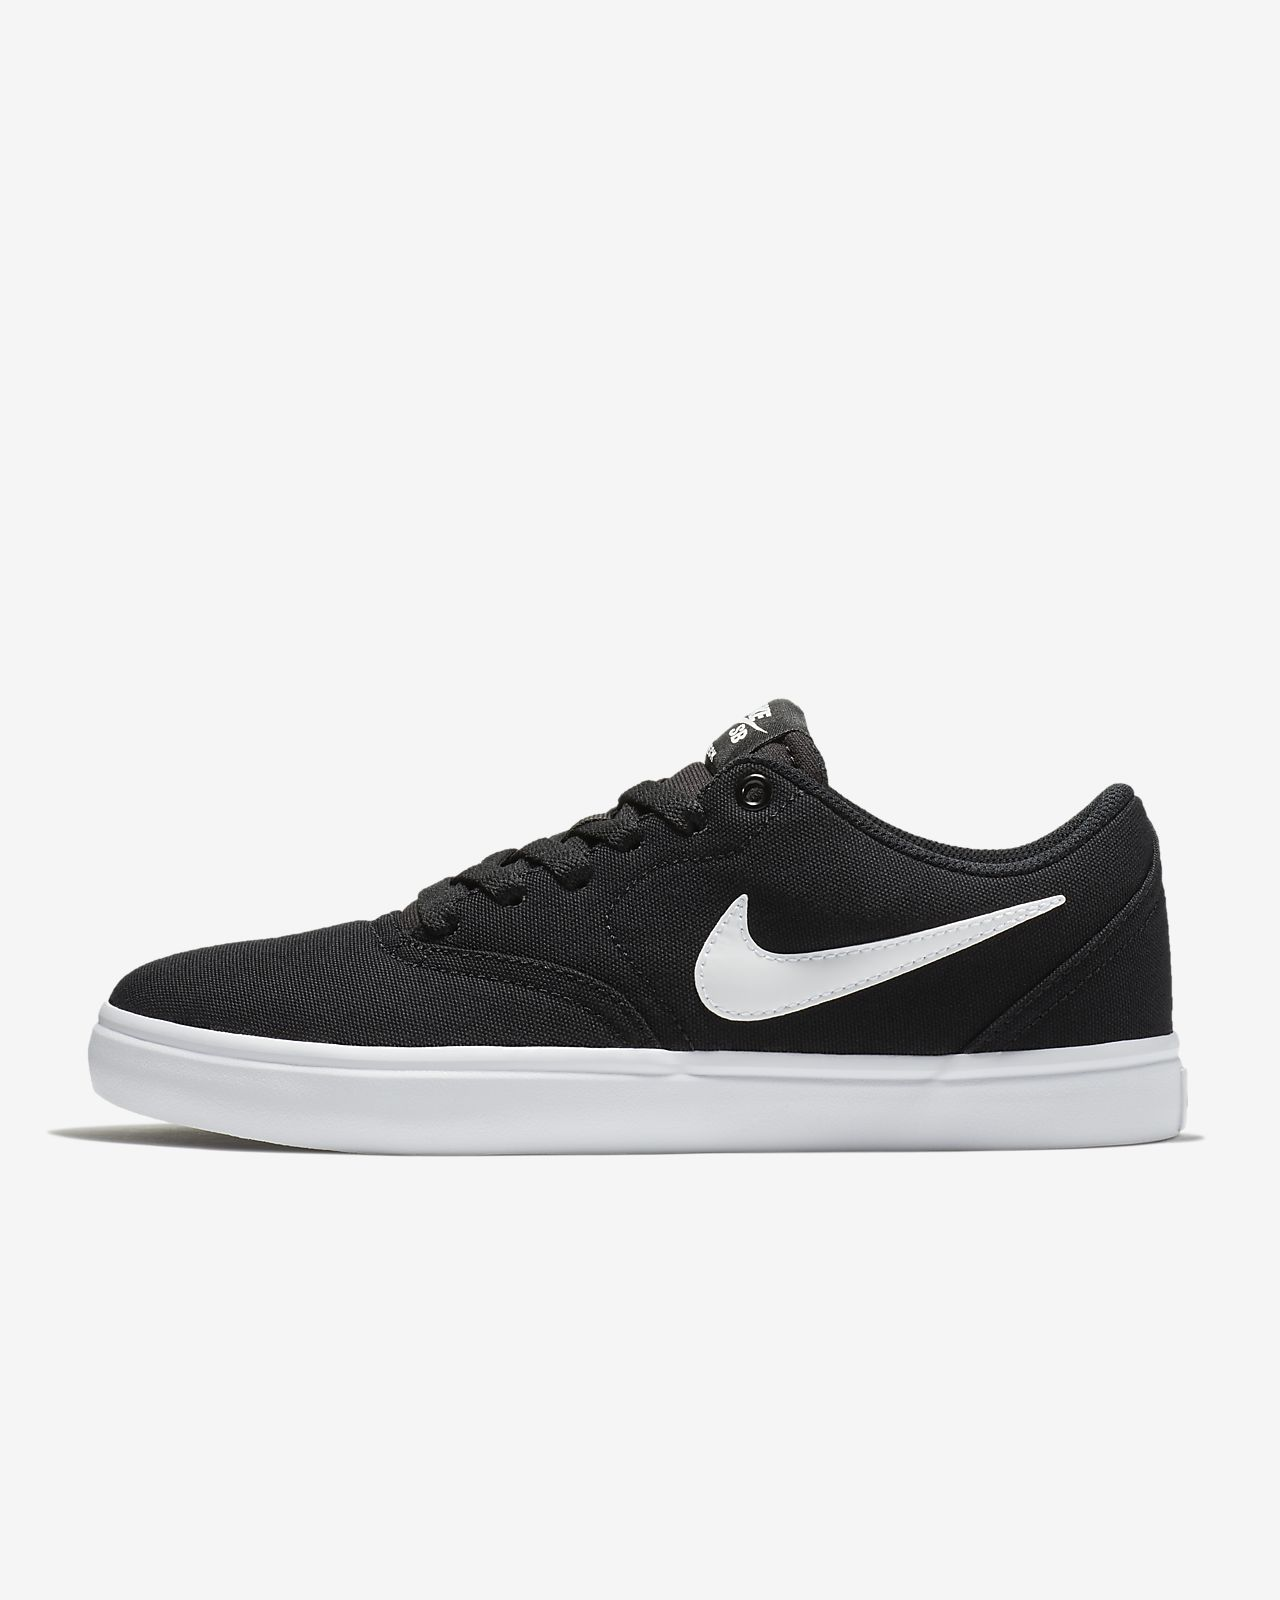 Nike SB Check Solarsoft Canvas Women s Skateboarding Shoe. Nike.com fac59856e